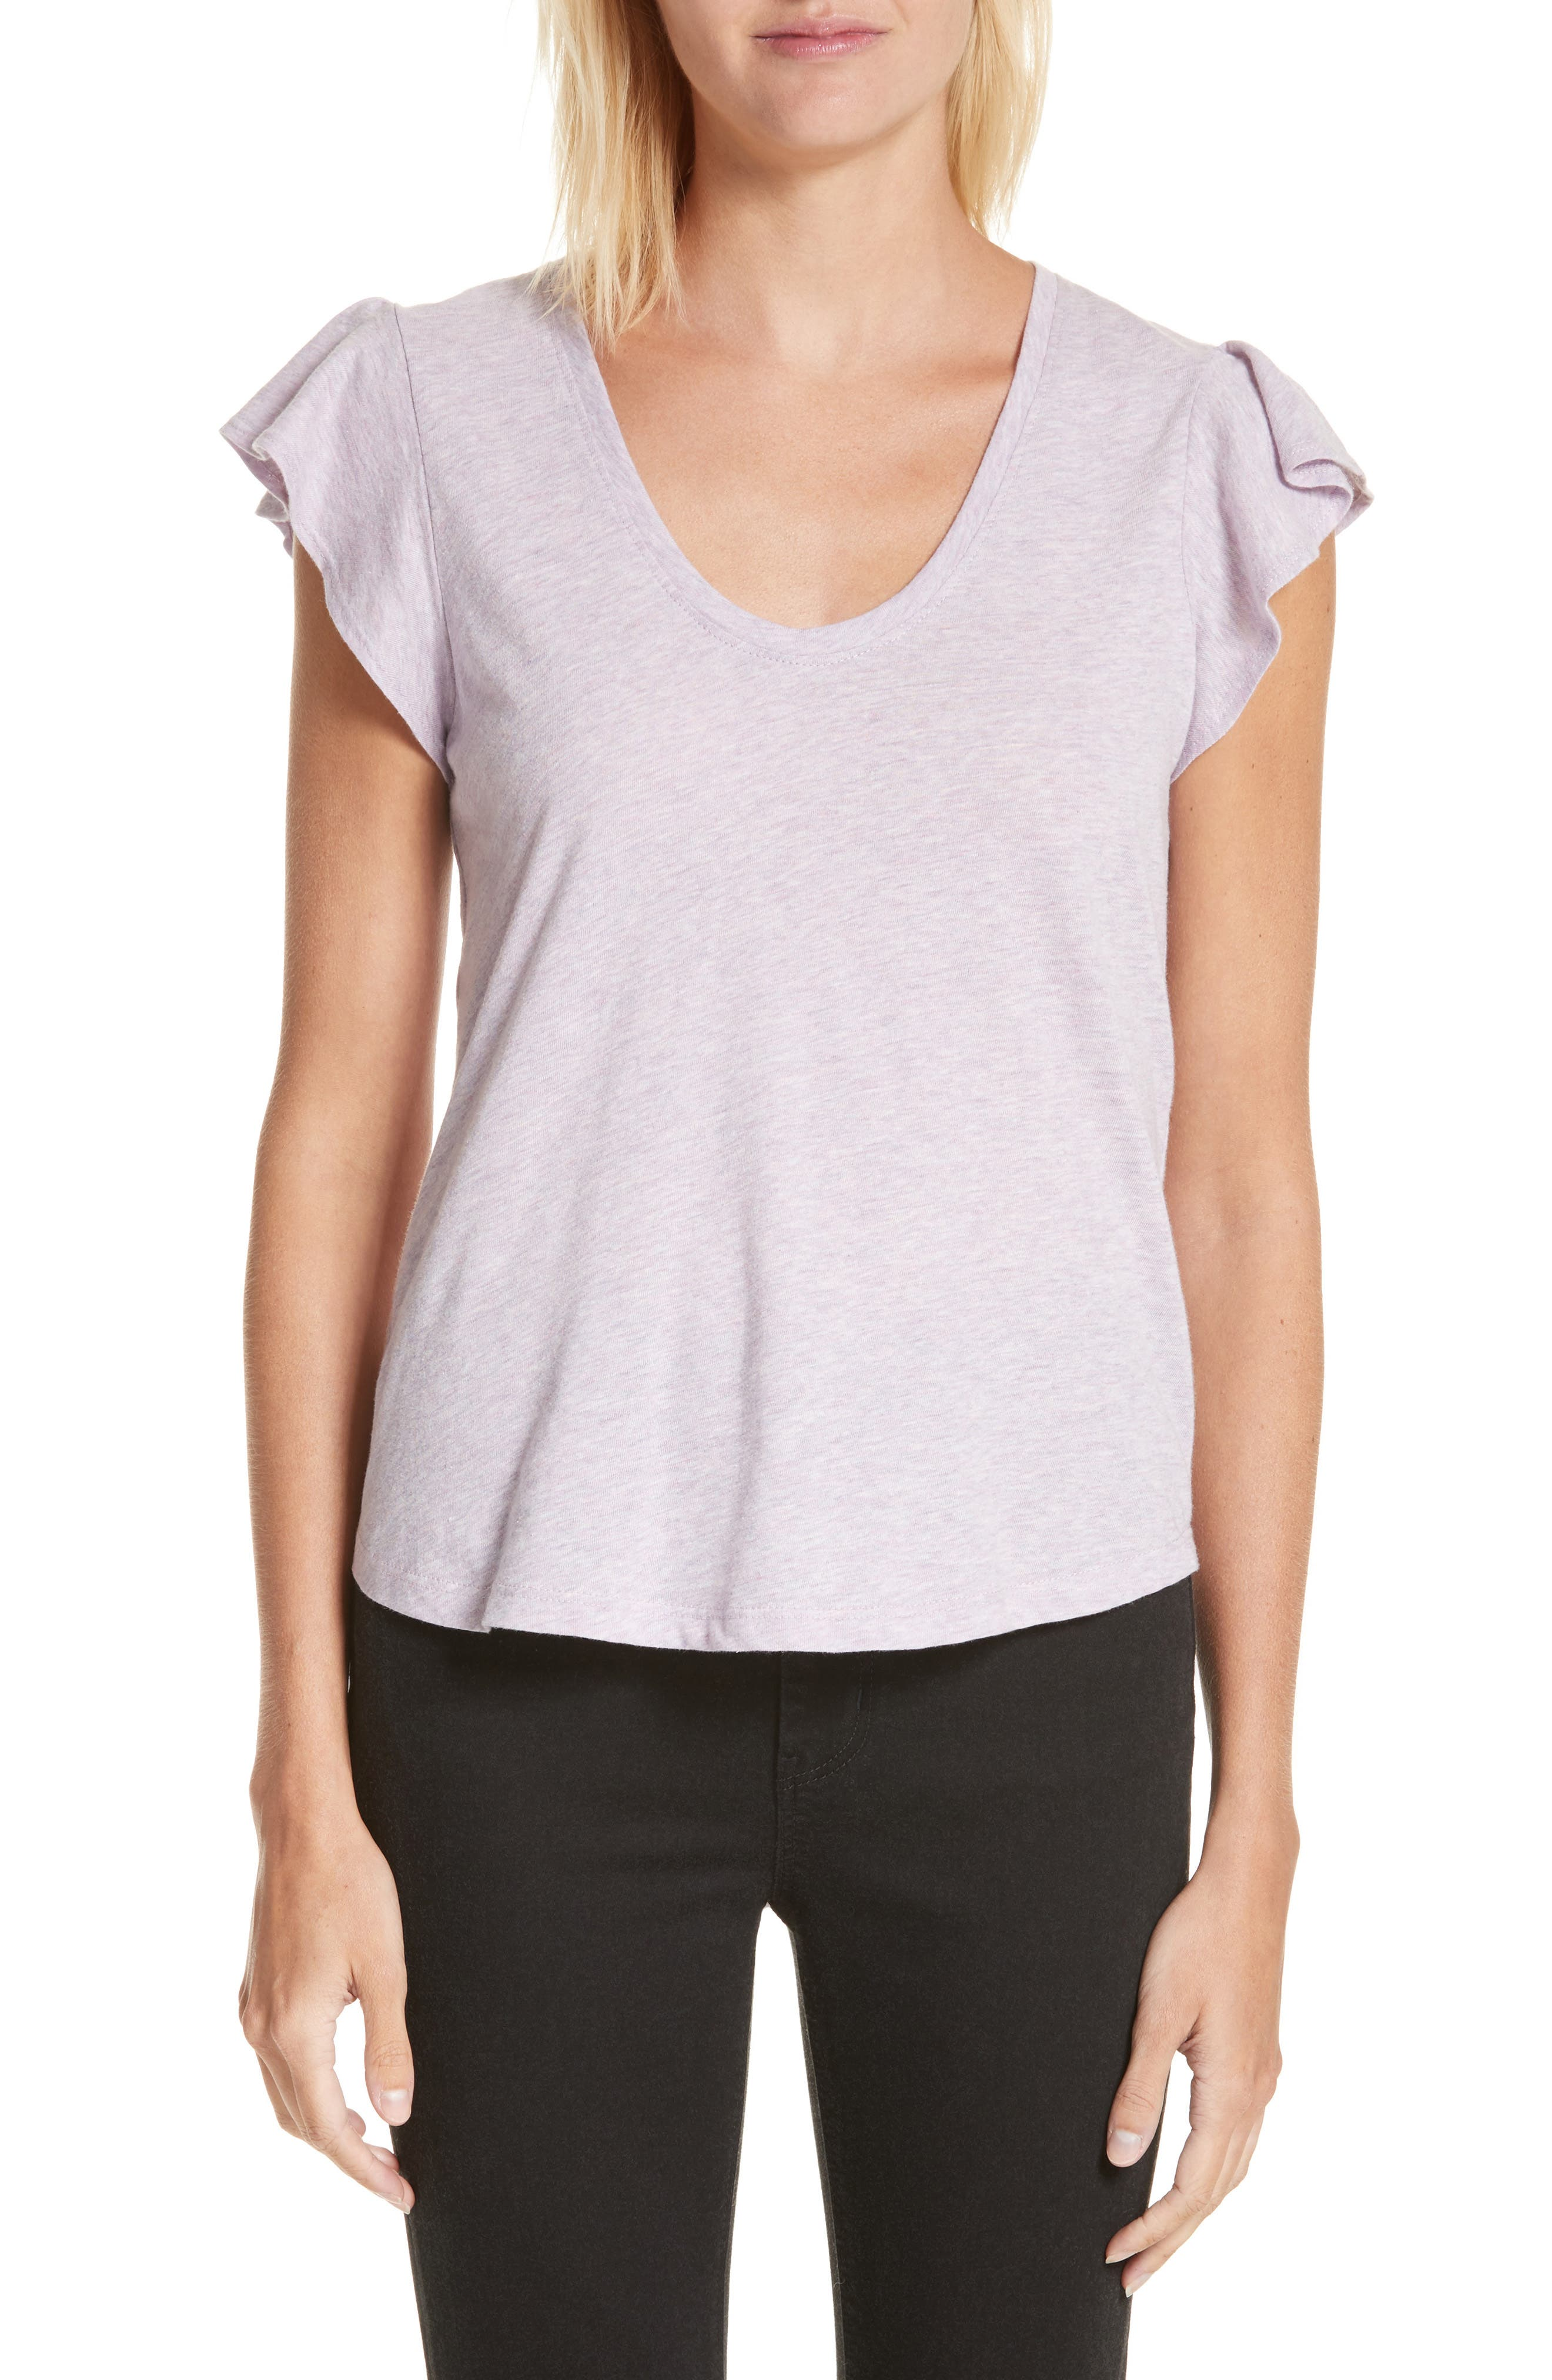 Alternate Image 1 Selected - La Vie Rebecca Taylor Washed Texture Jersey Tee